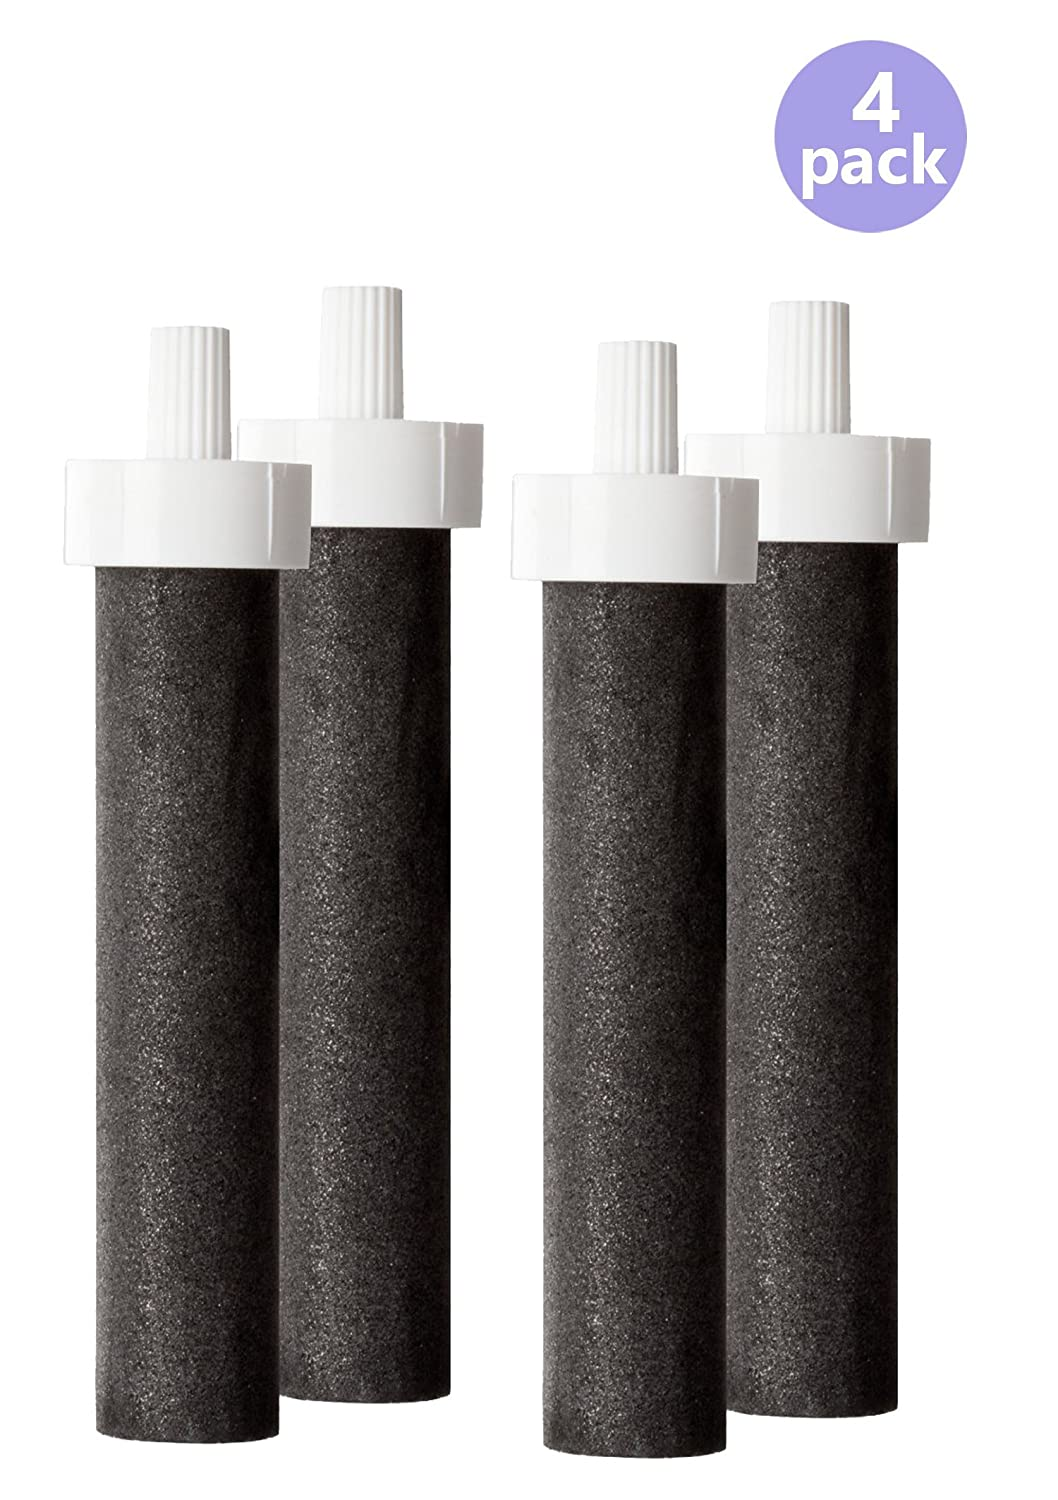 Brita Water Filter Bottle Replacement Filters, (4 Count)